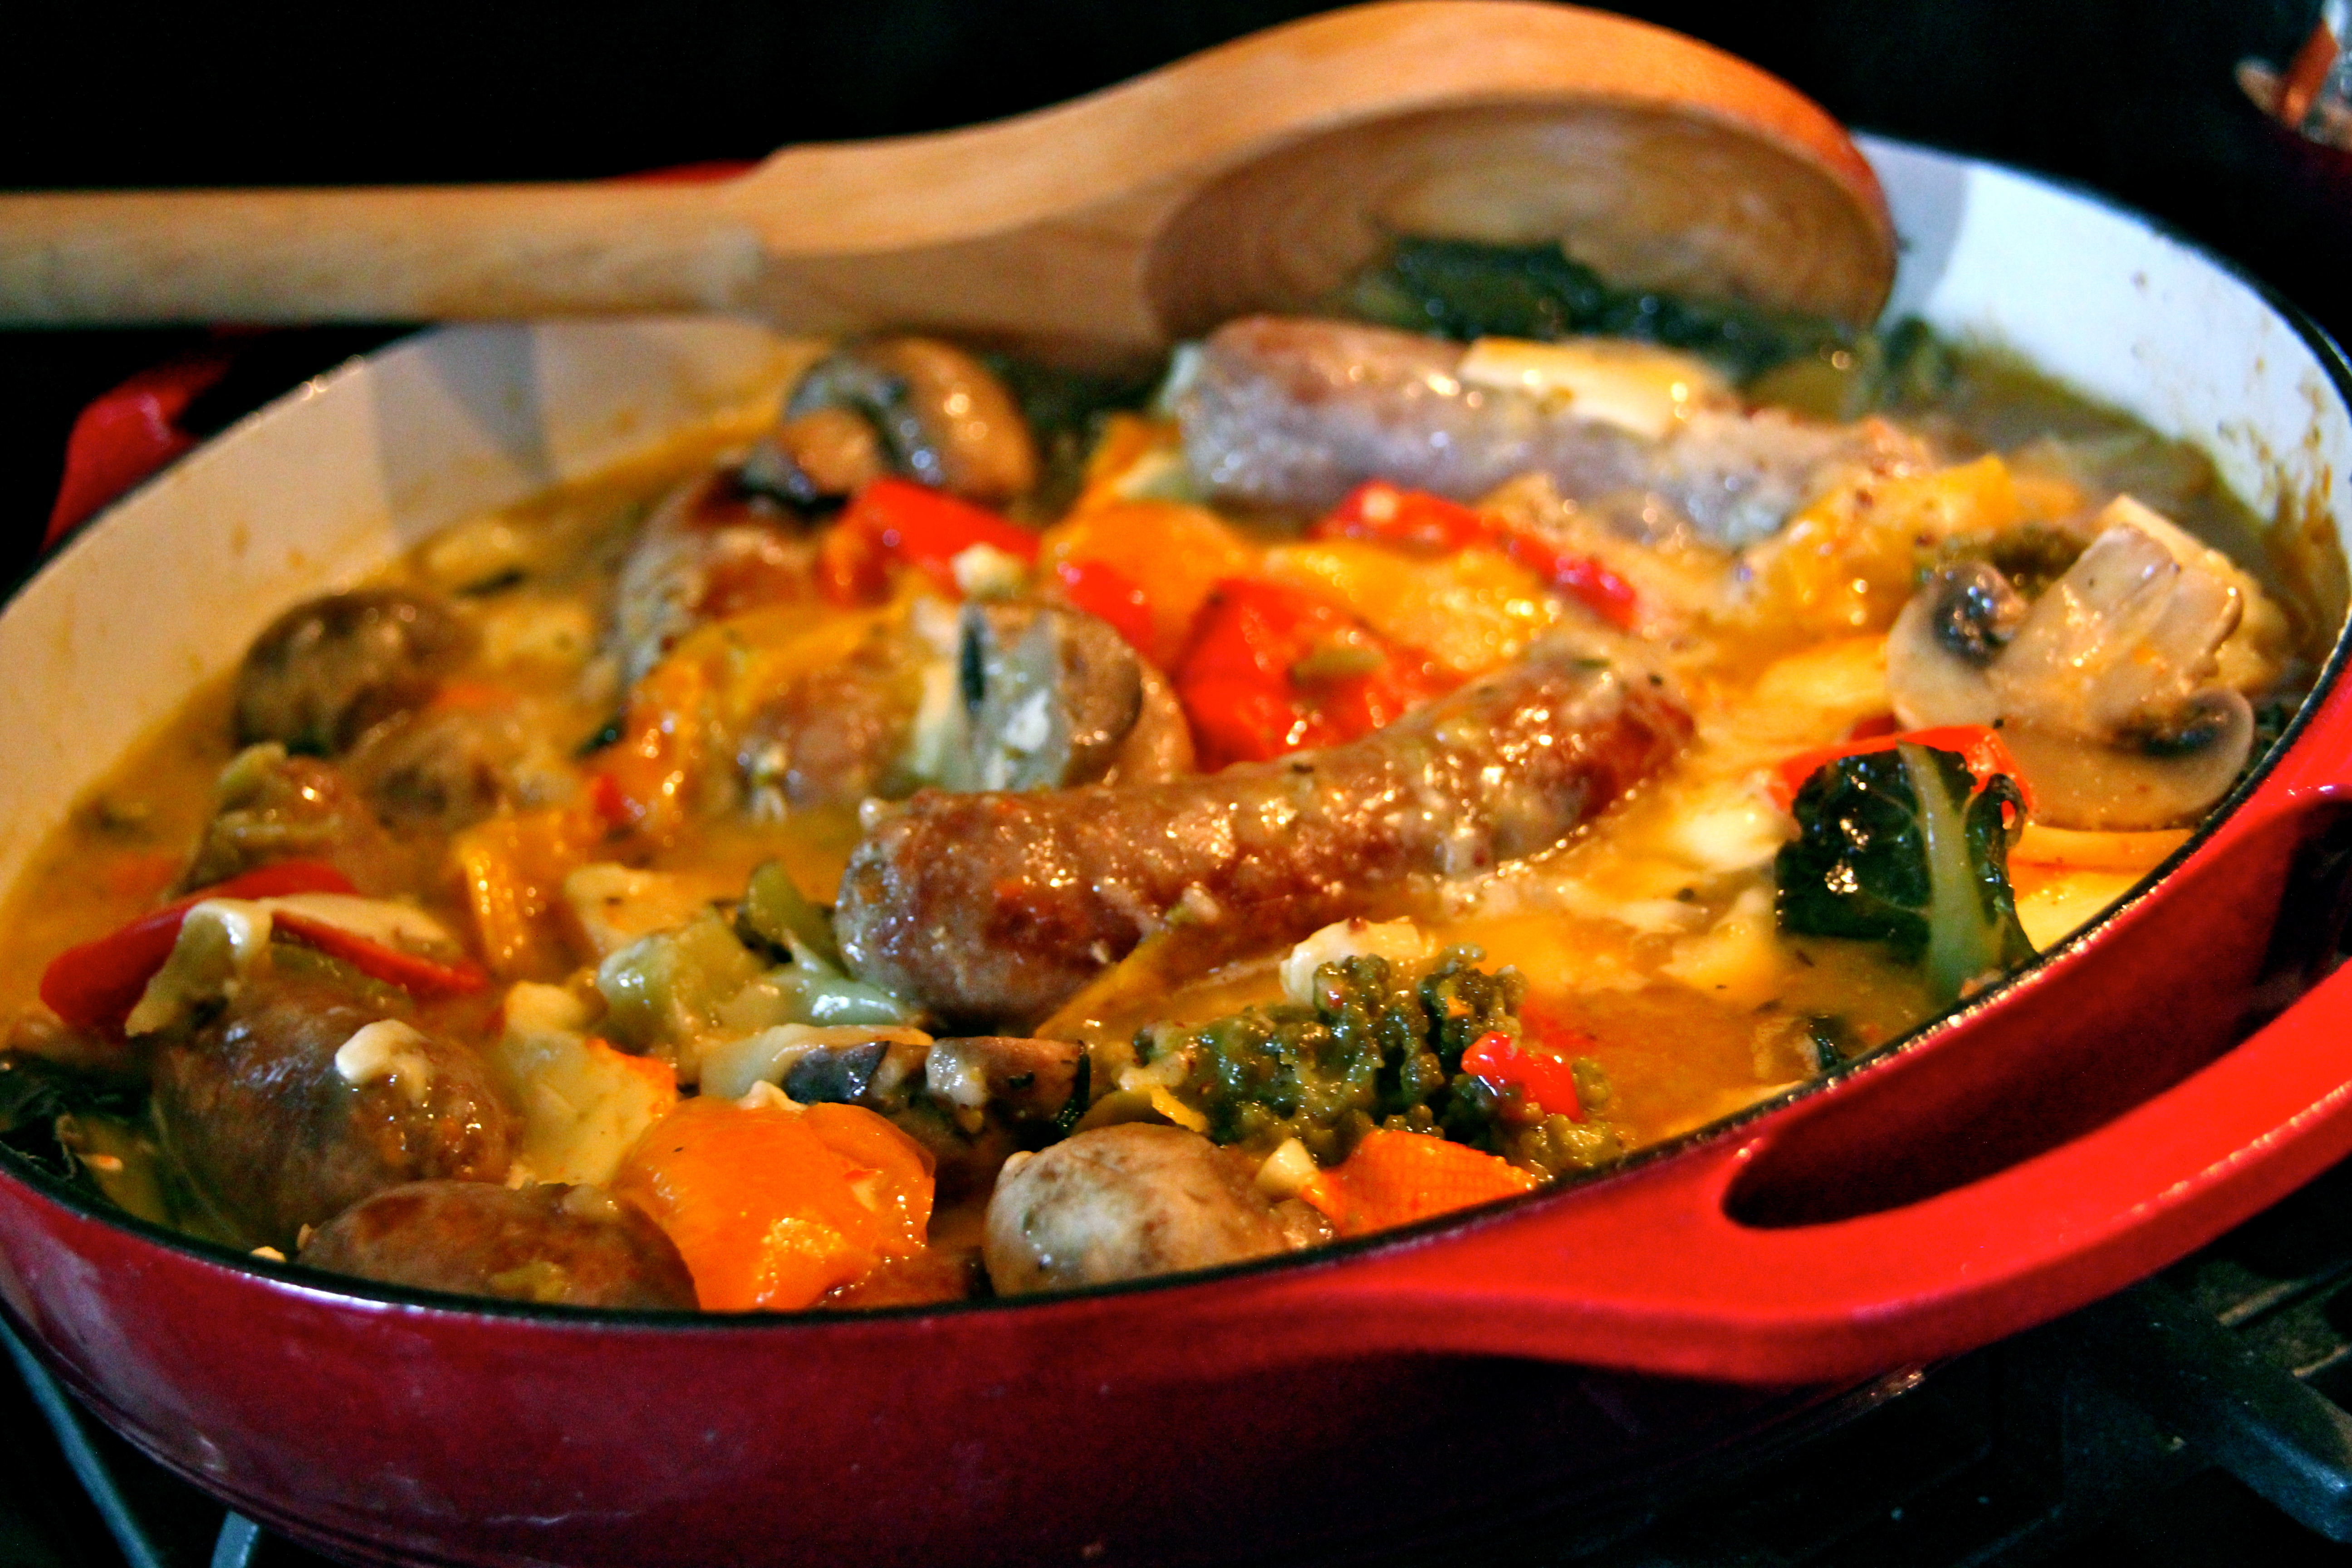 Summer Vegetables , Sausage, French cuisine, easy one pot meal